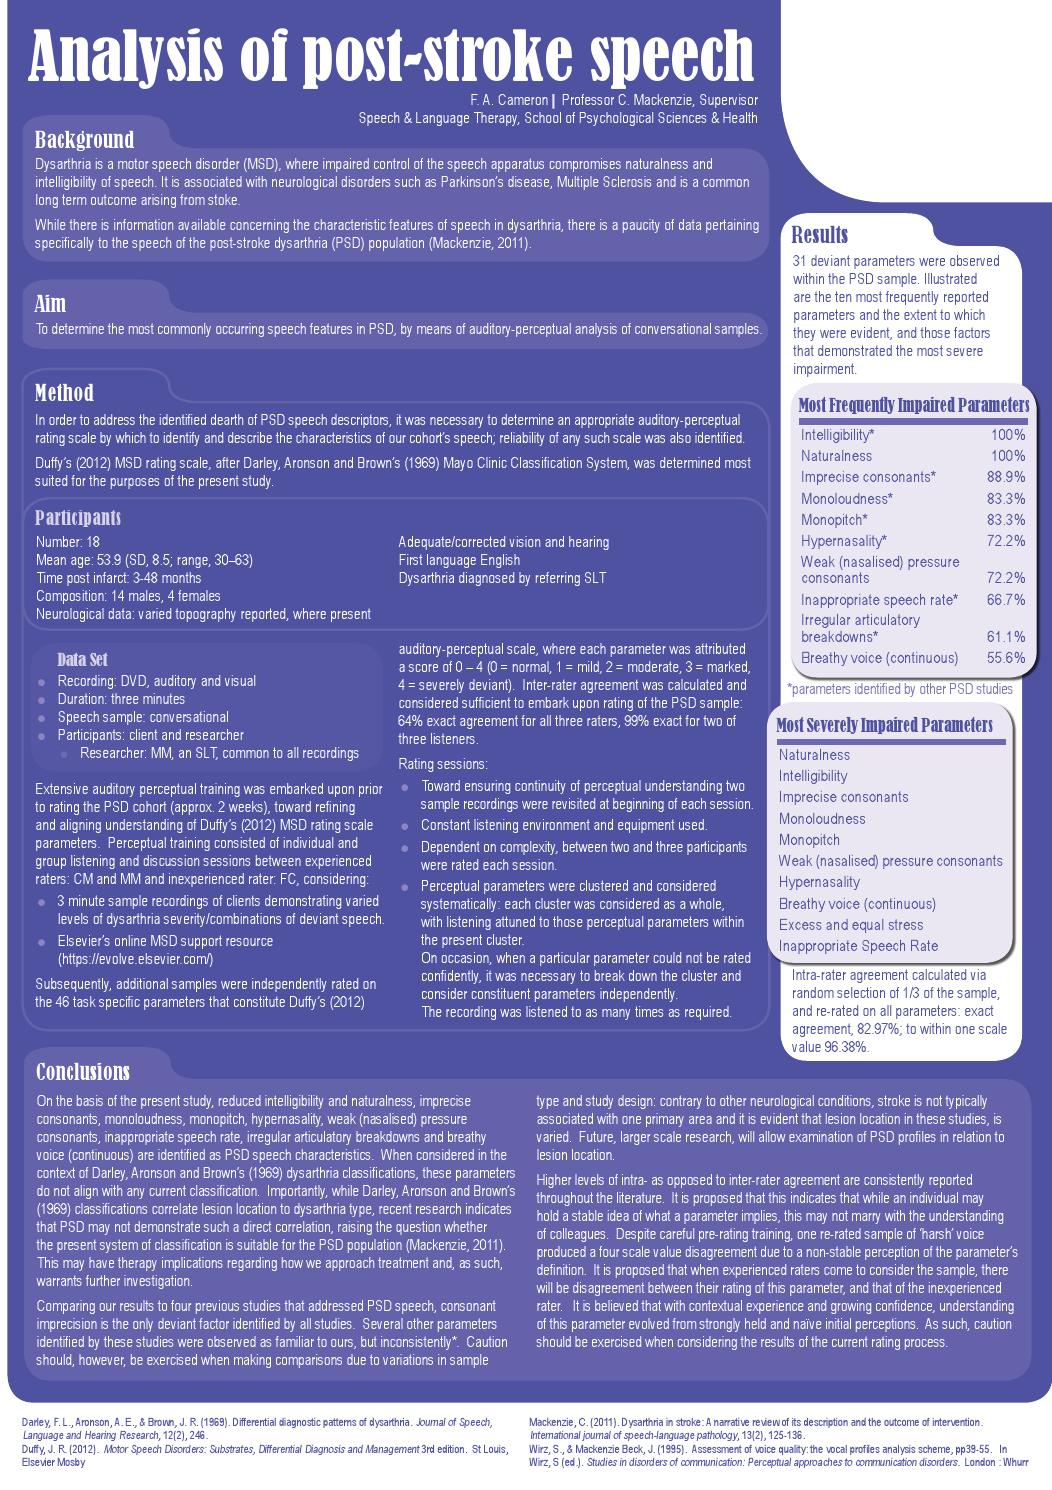 Research Intern Poster by Education Enhancement - University